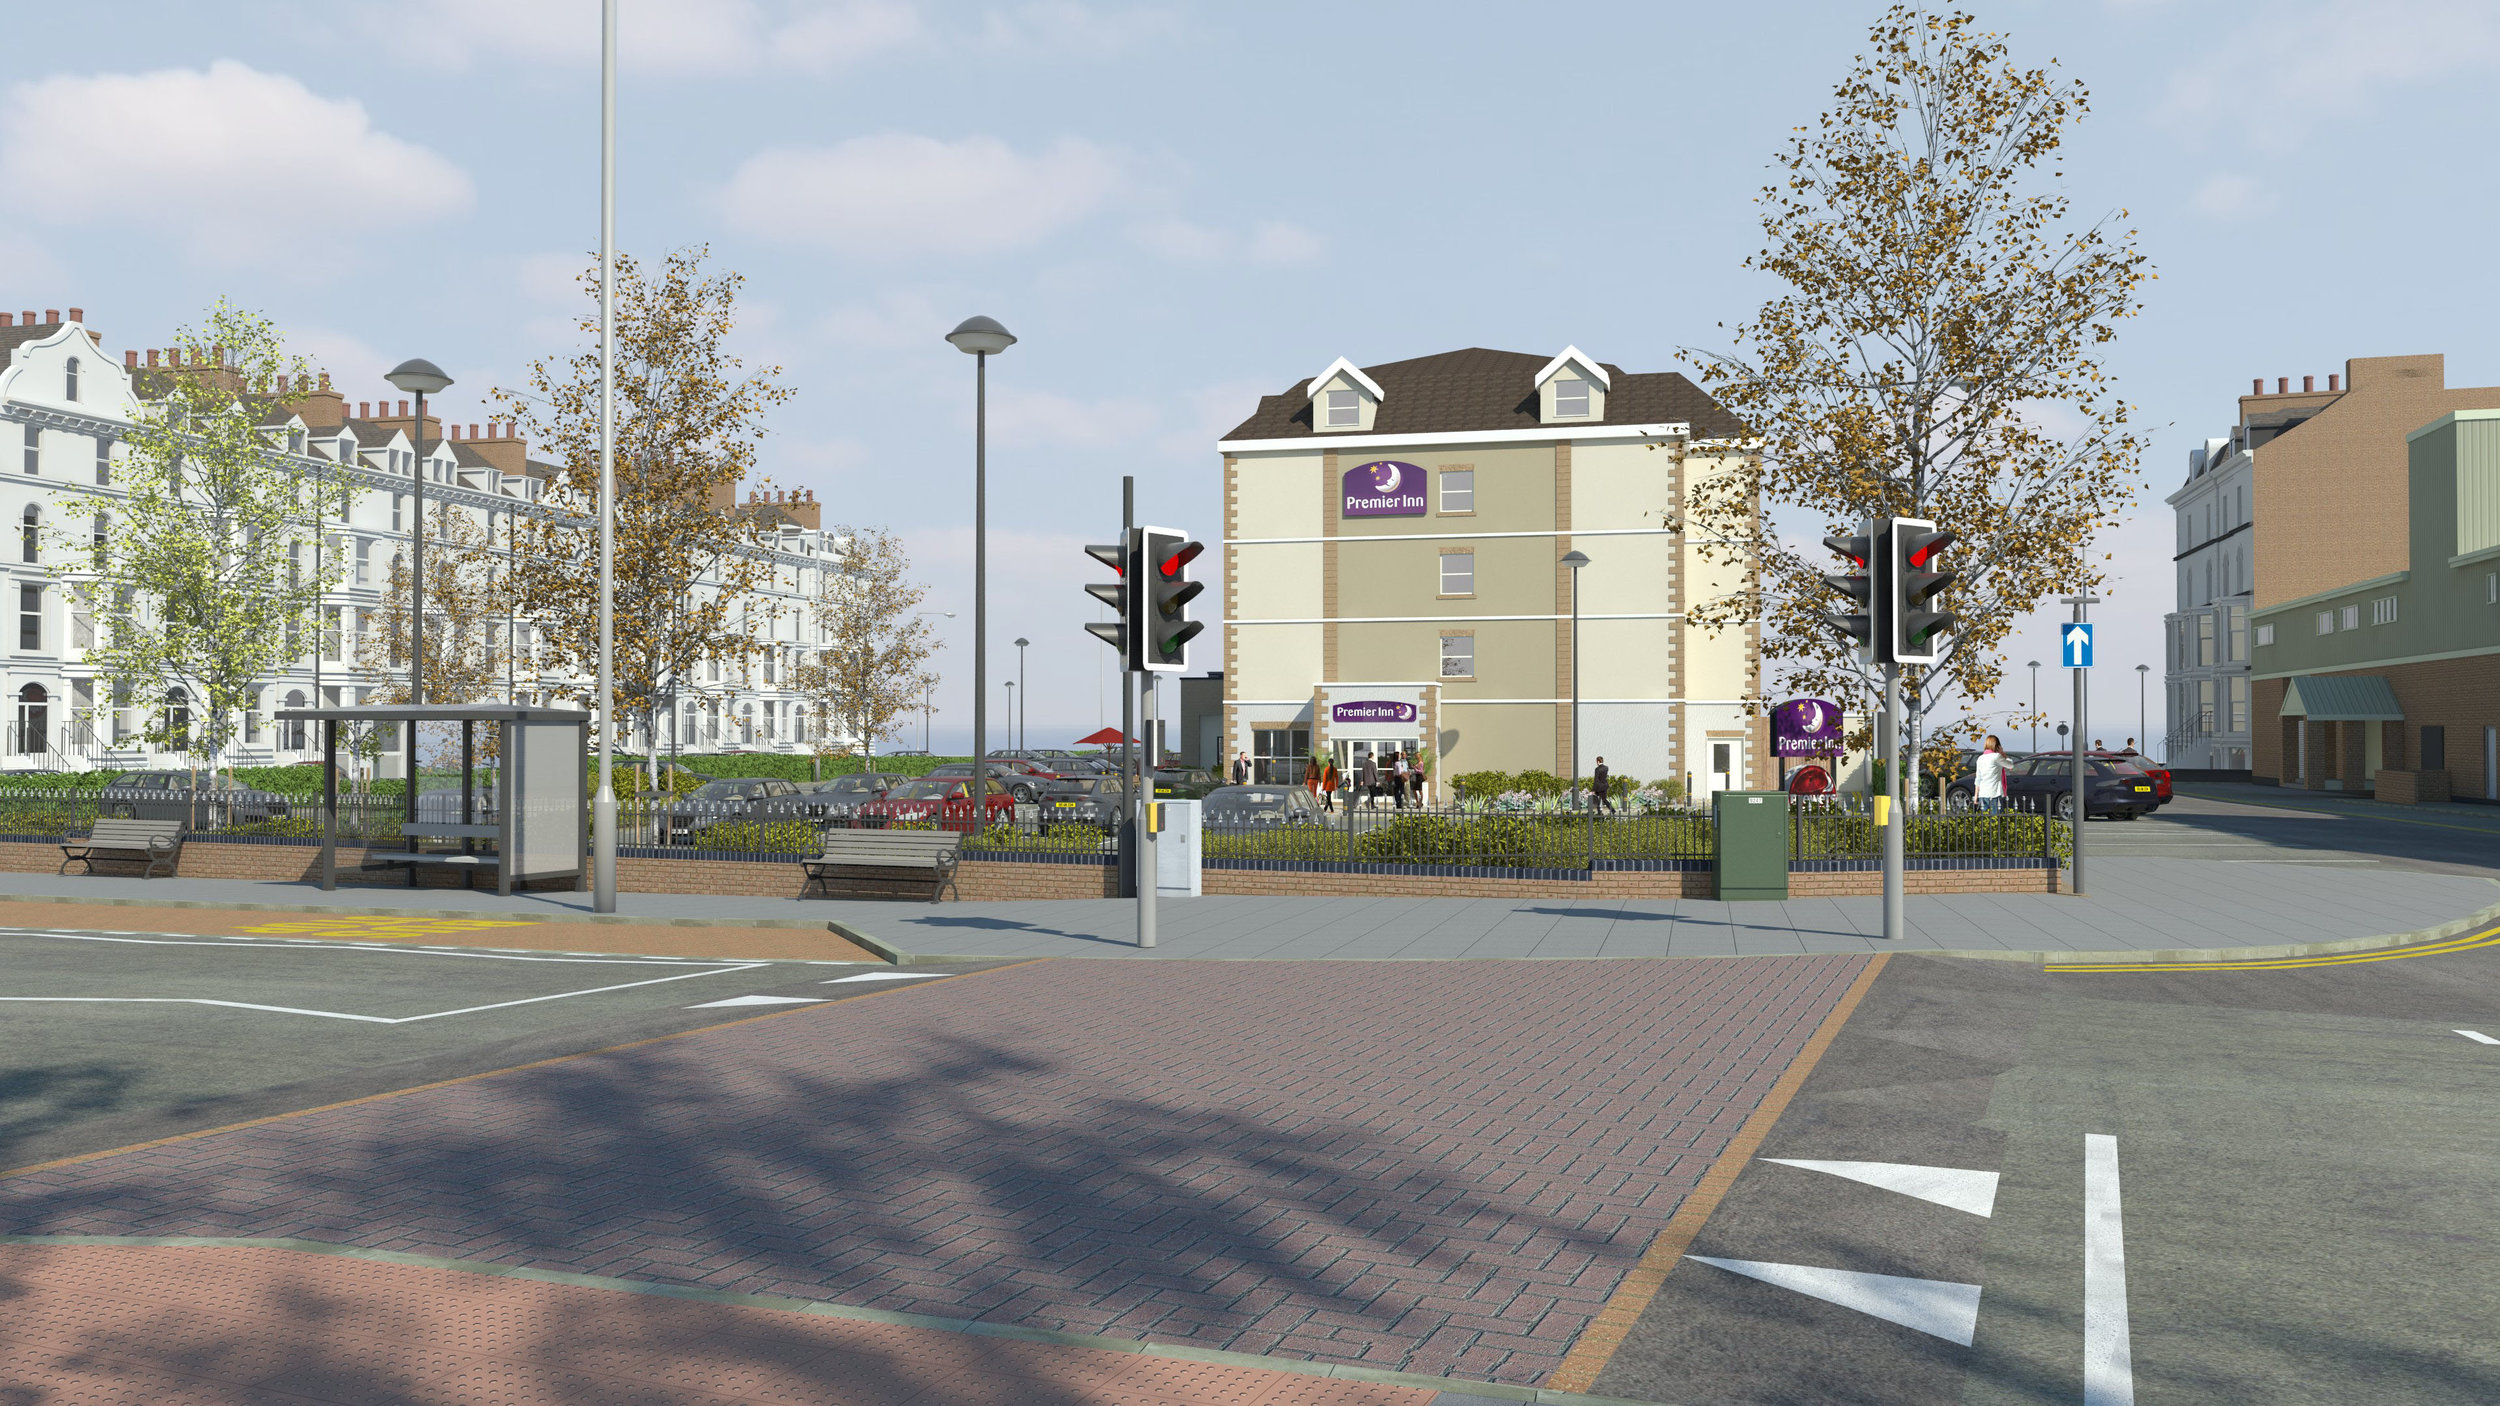 Arch-e-tech_Design_Ltd-Premier-Inn_Bridlington-06.jpg